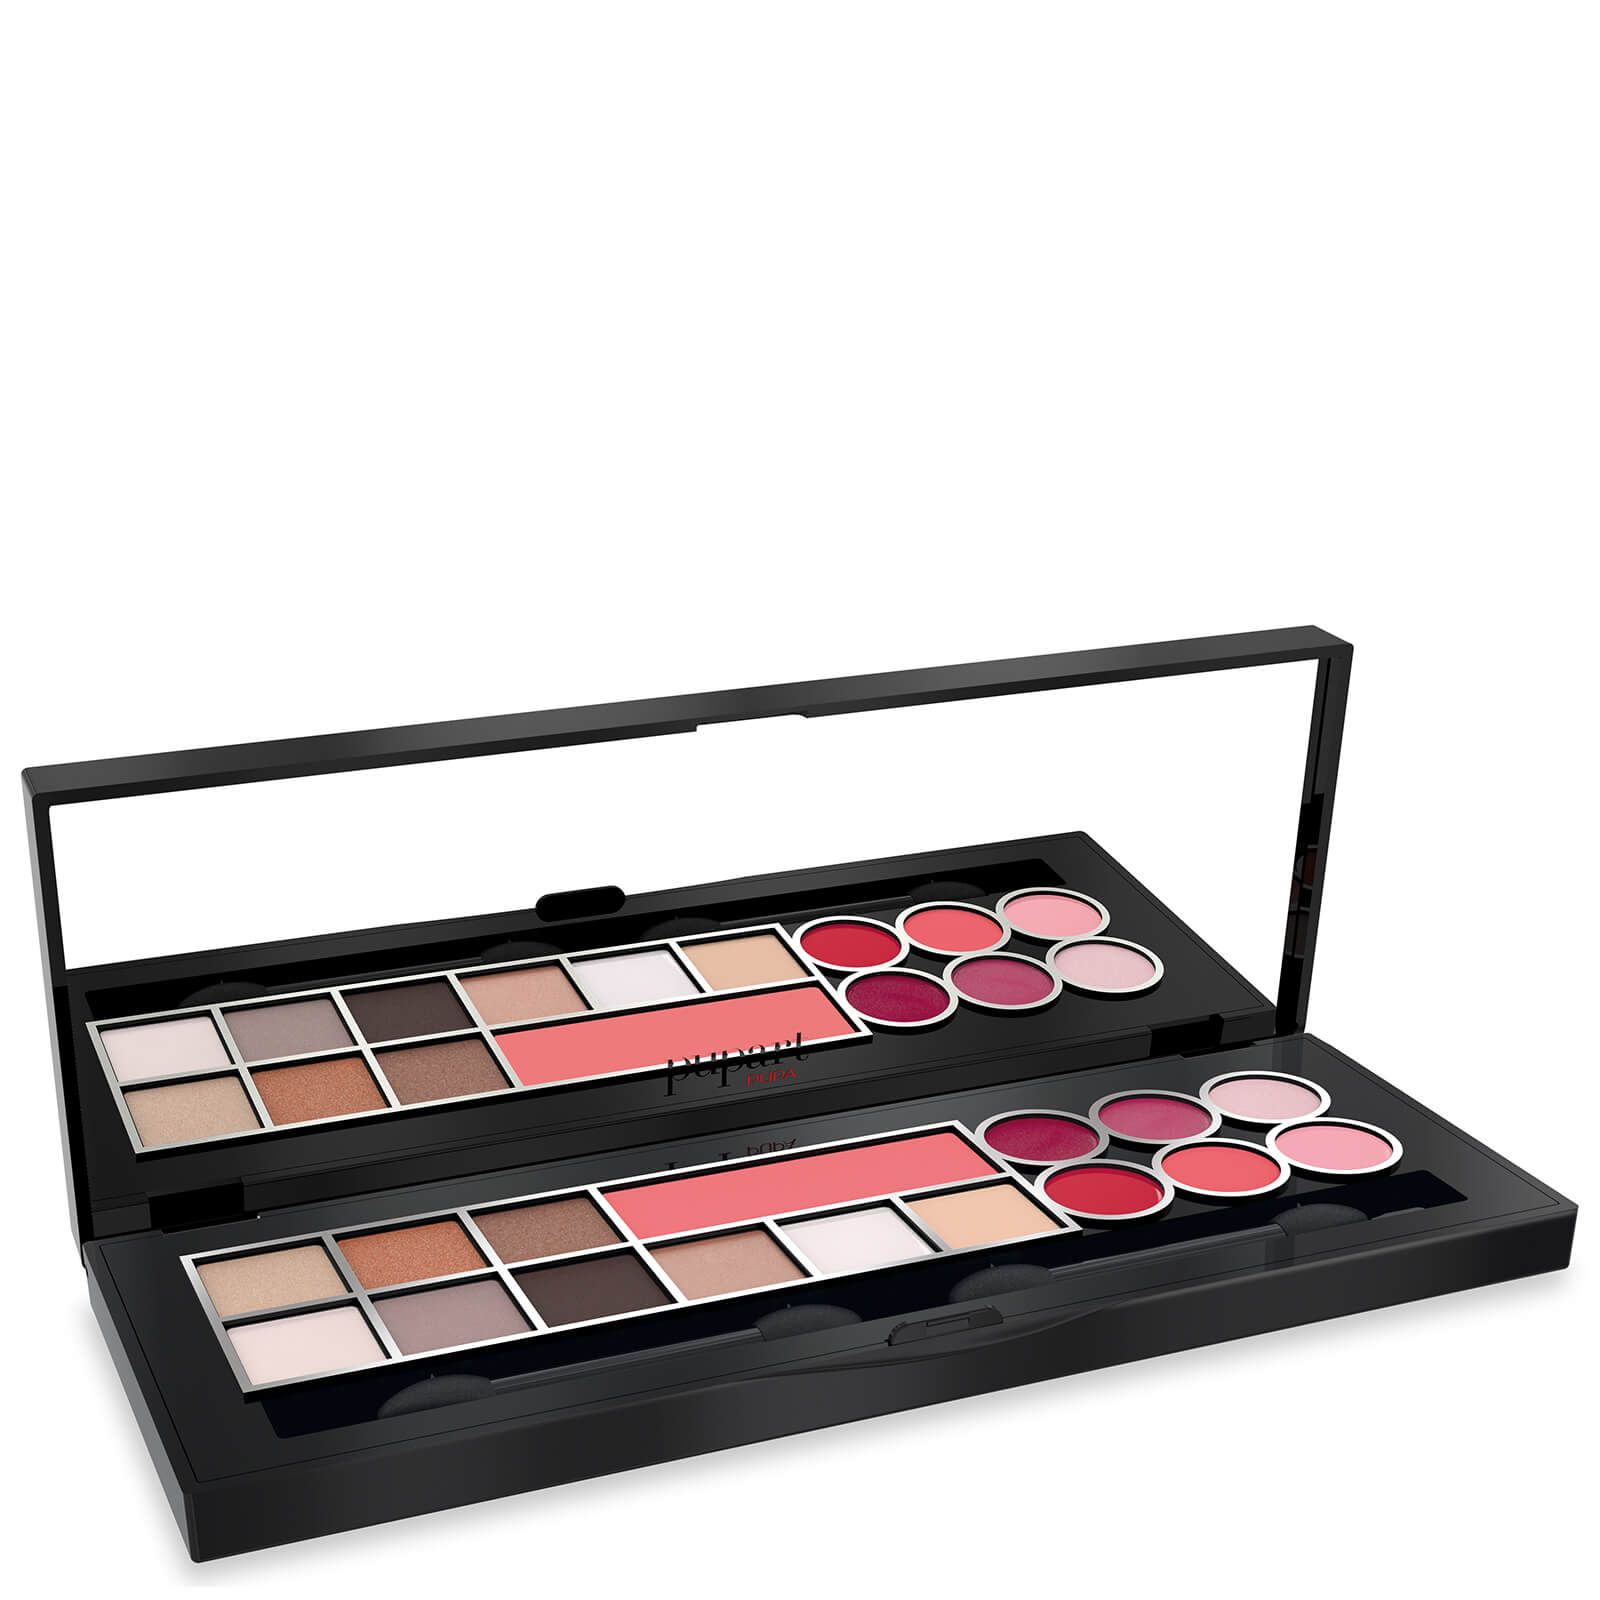 Pupa Pupart Red Cover Makeup Palette Warm Shades in 2020